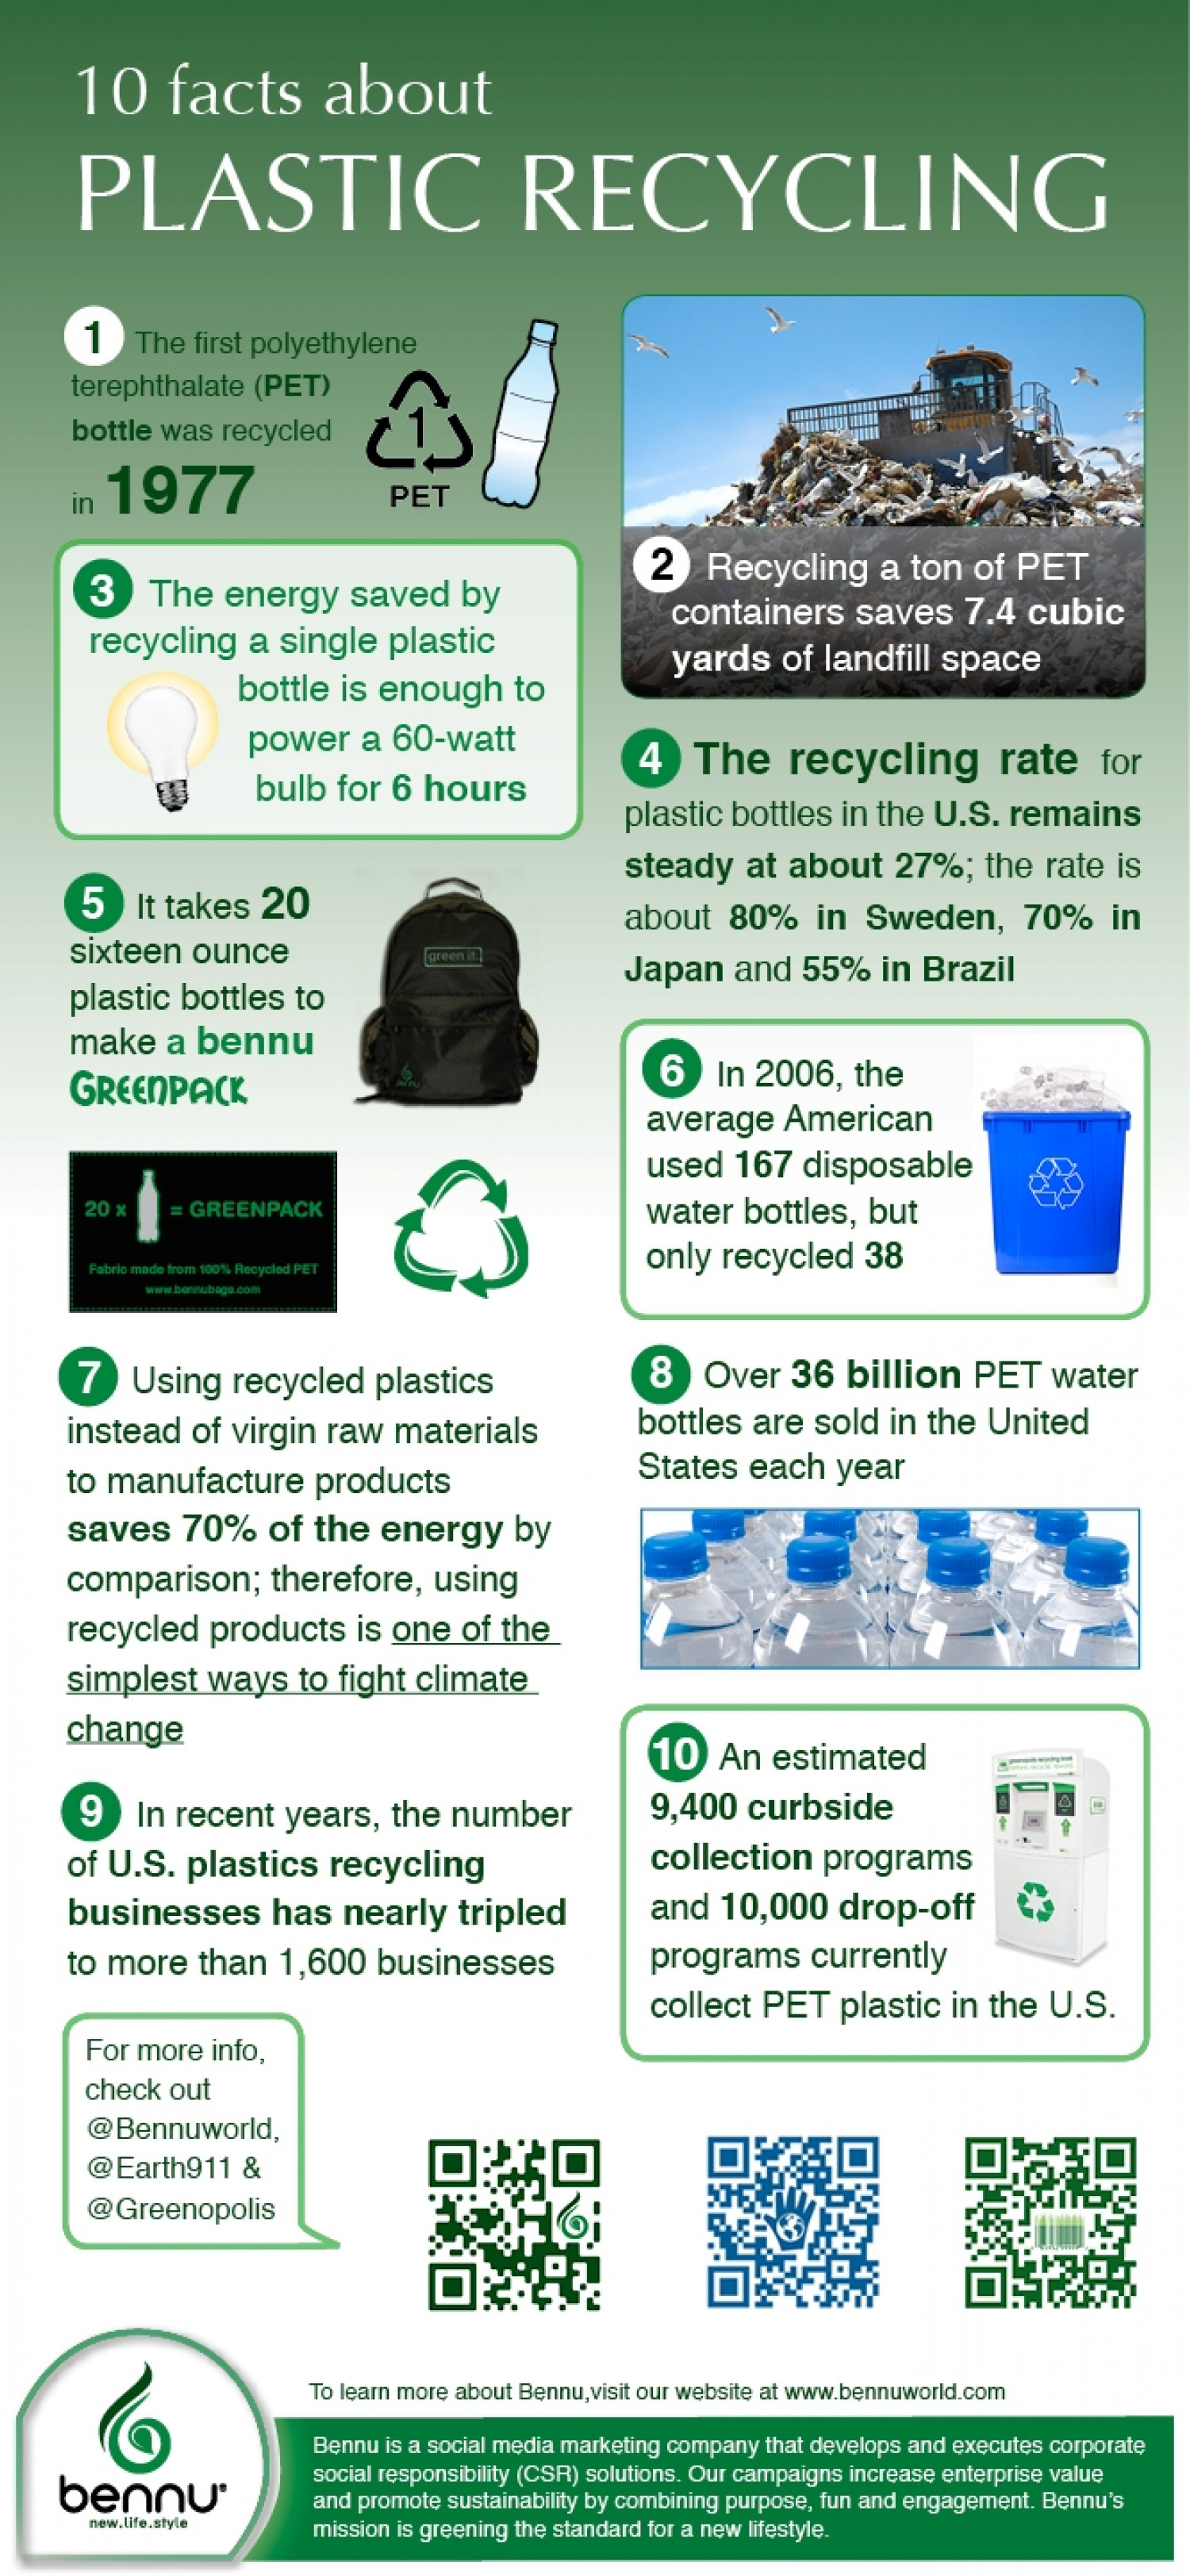 10 Facts About Plastic Recycling Infographic